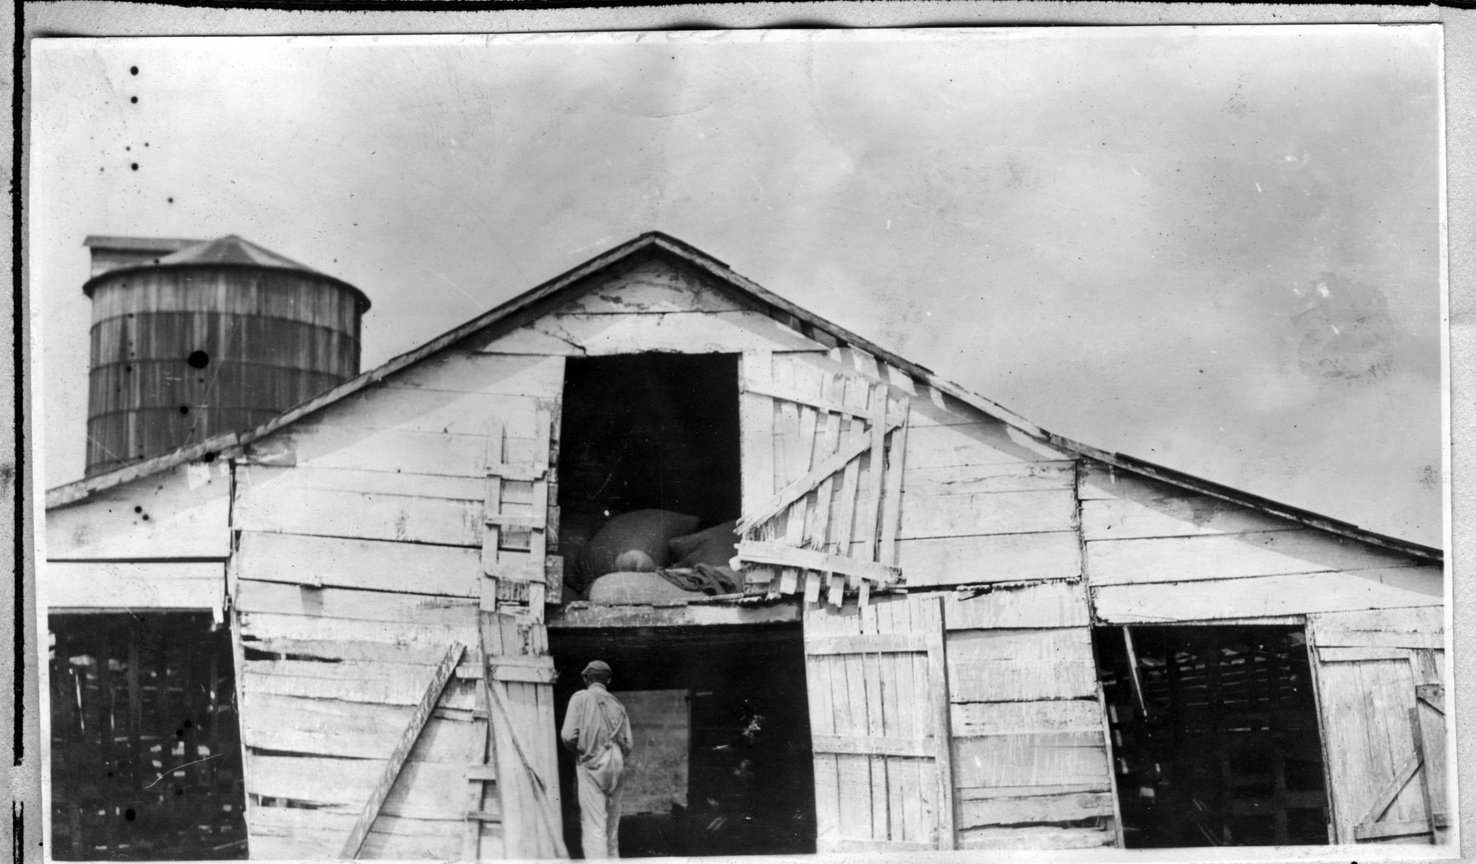 011~W. L. Pinkston Barn Aug 1920.jpg